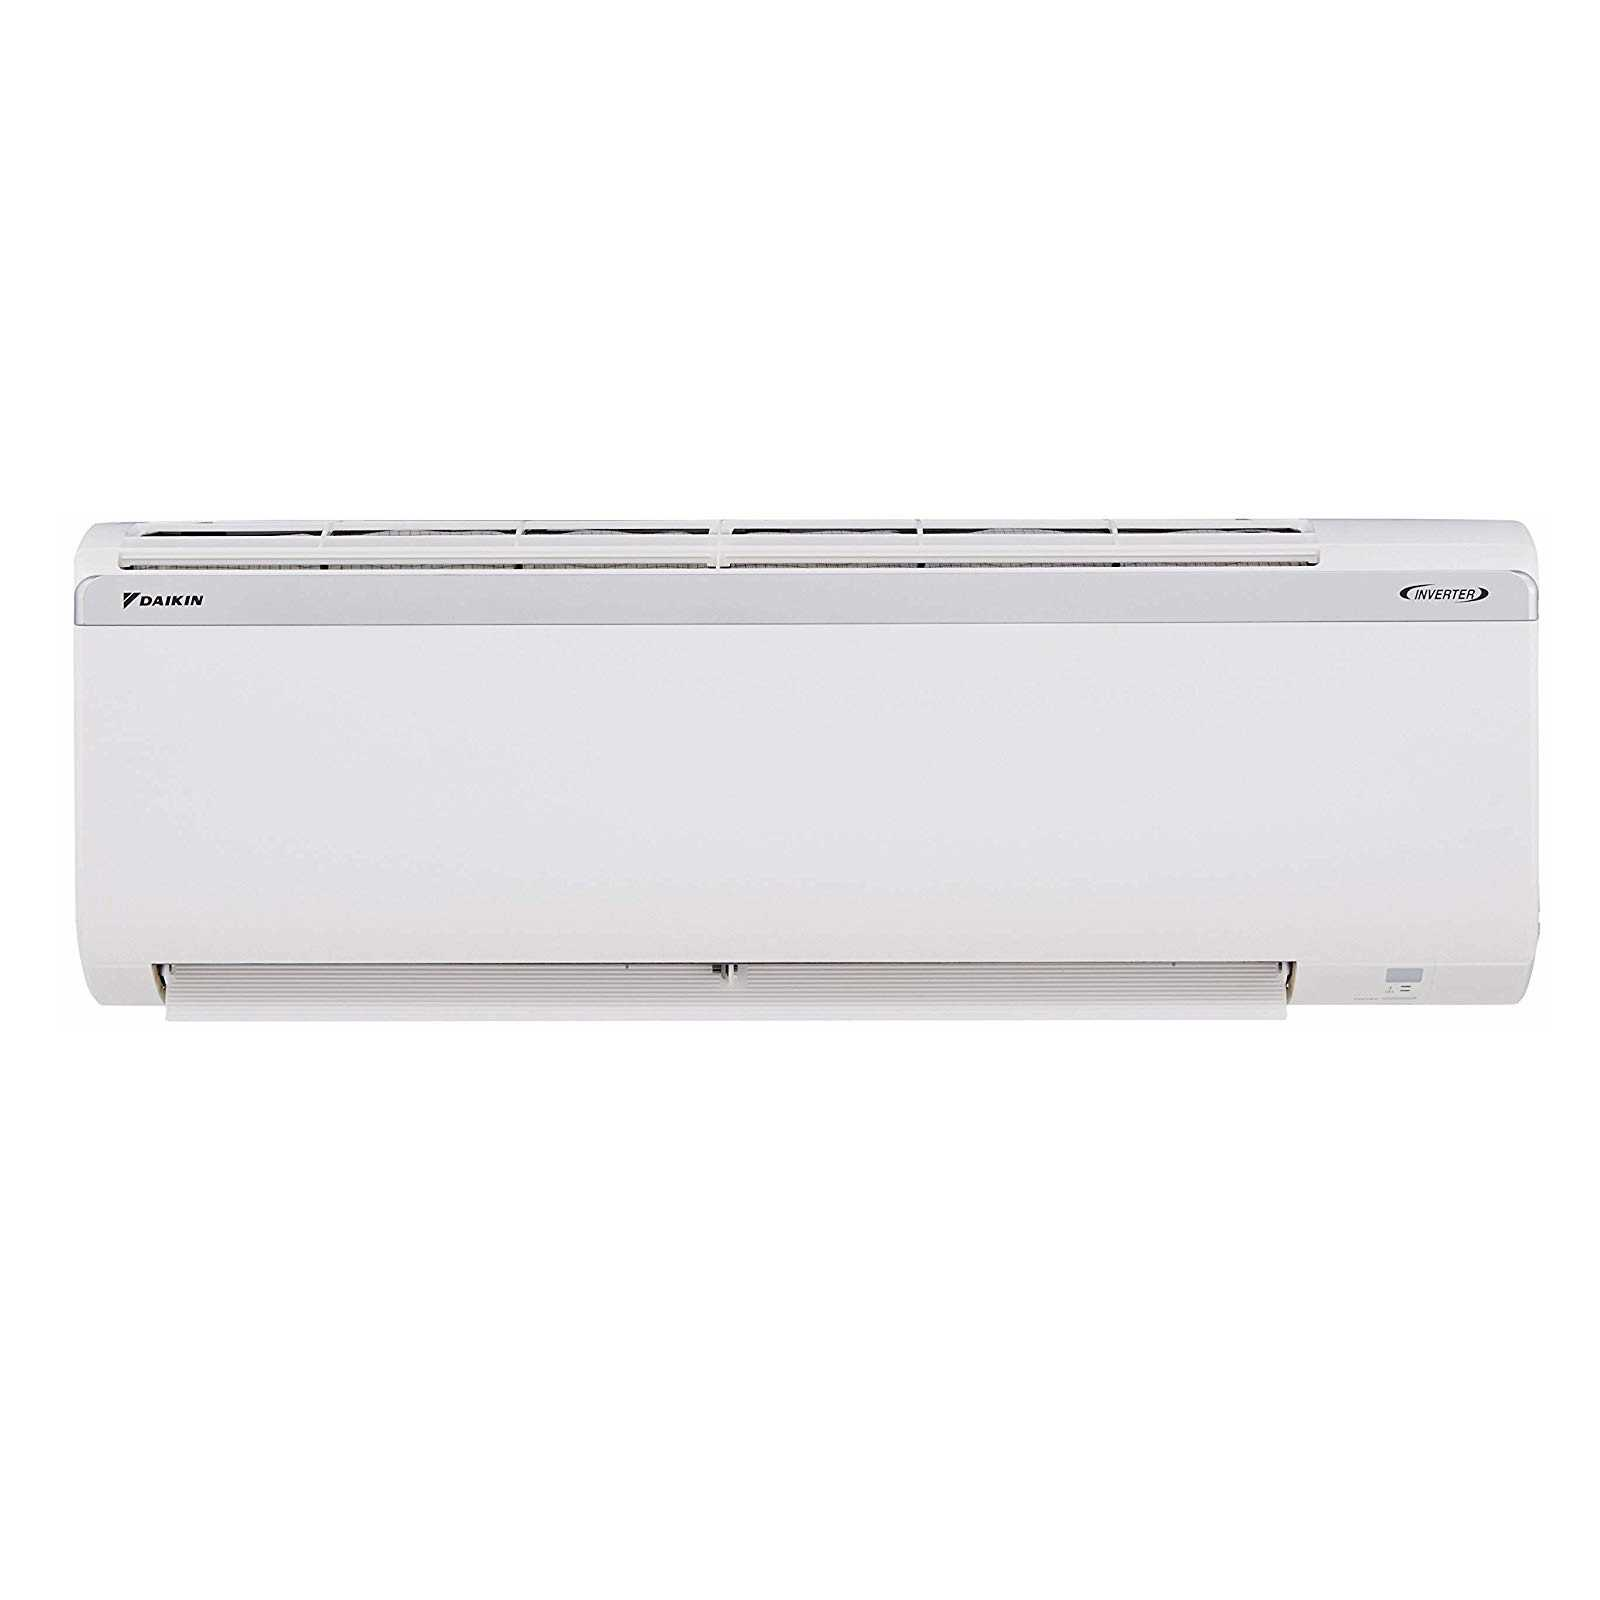 Daikin ATKL50TV 1.5 Ton 3 Star Inverter Split AC